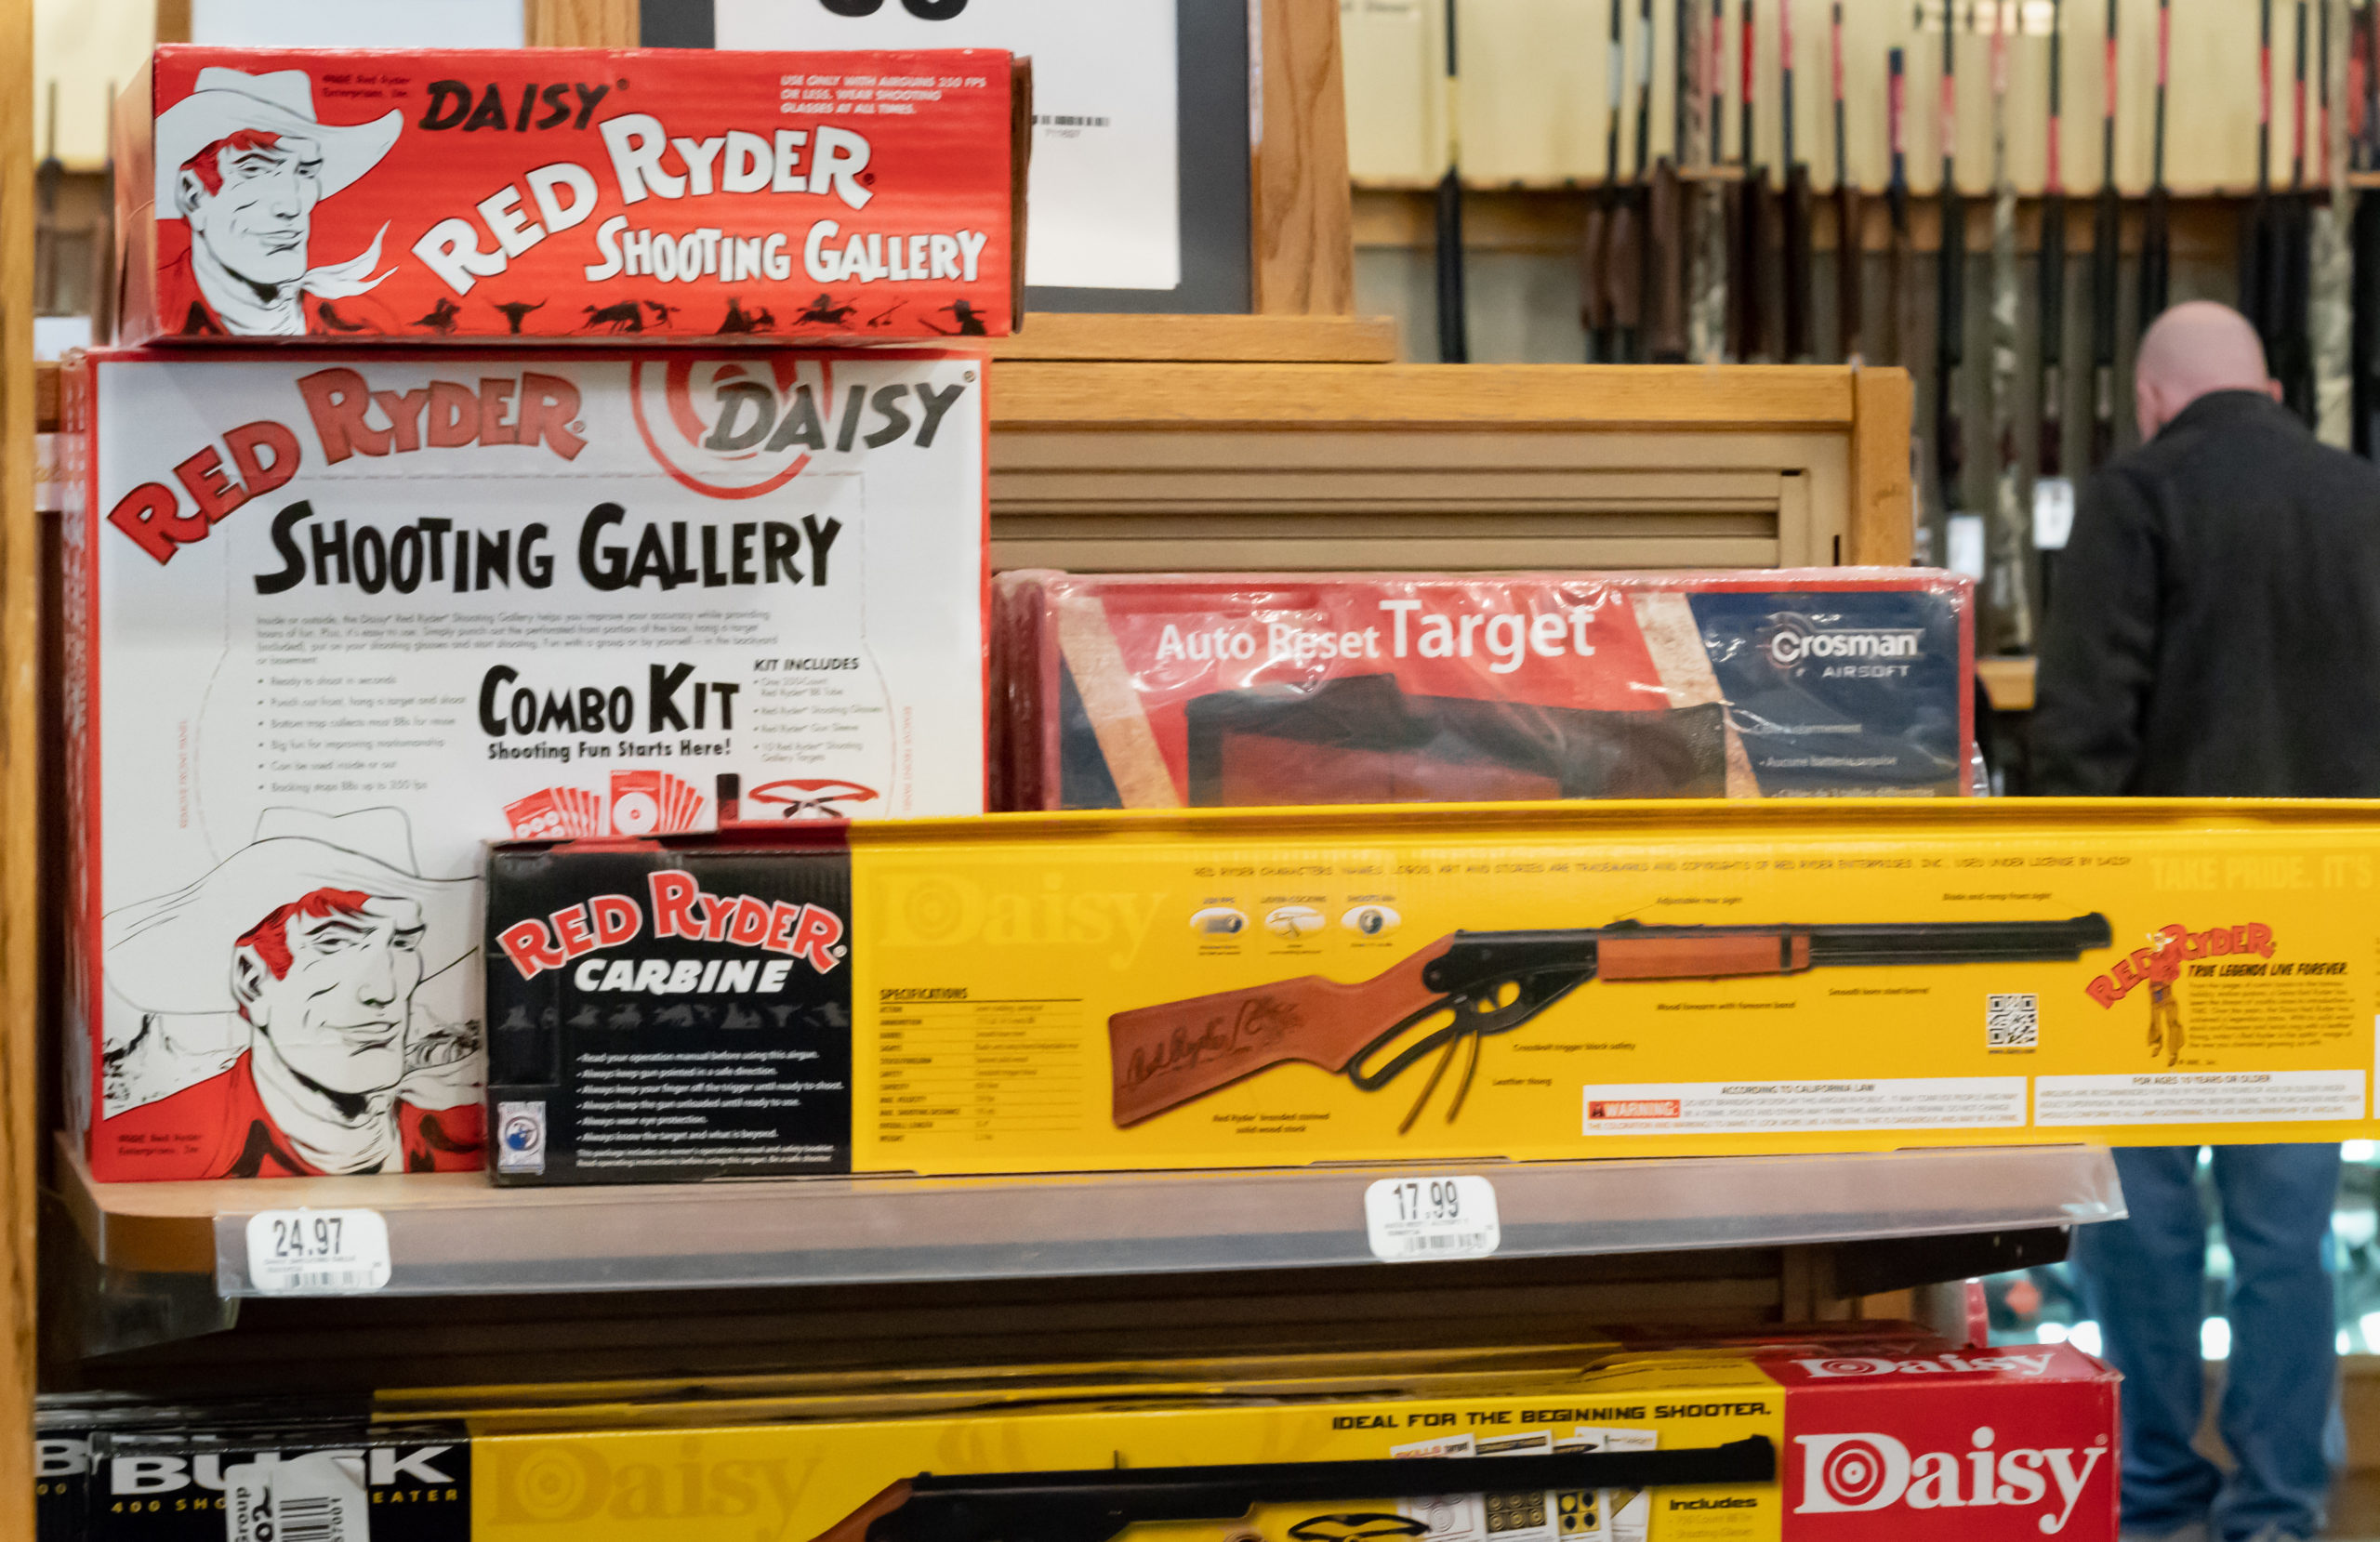 Toy guns for sale on display (Photo credit: Shutterstock)